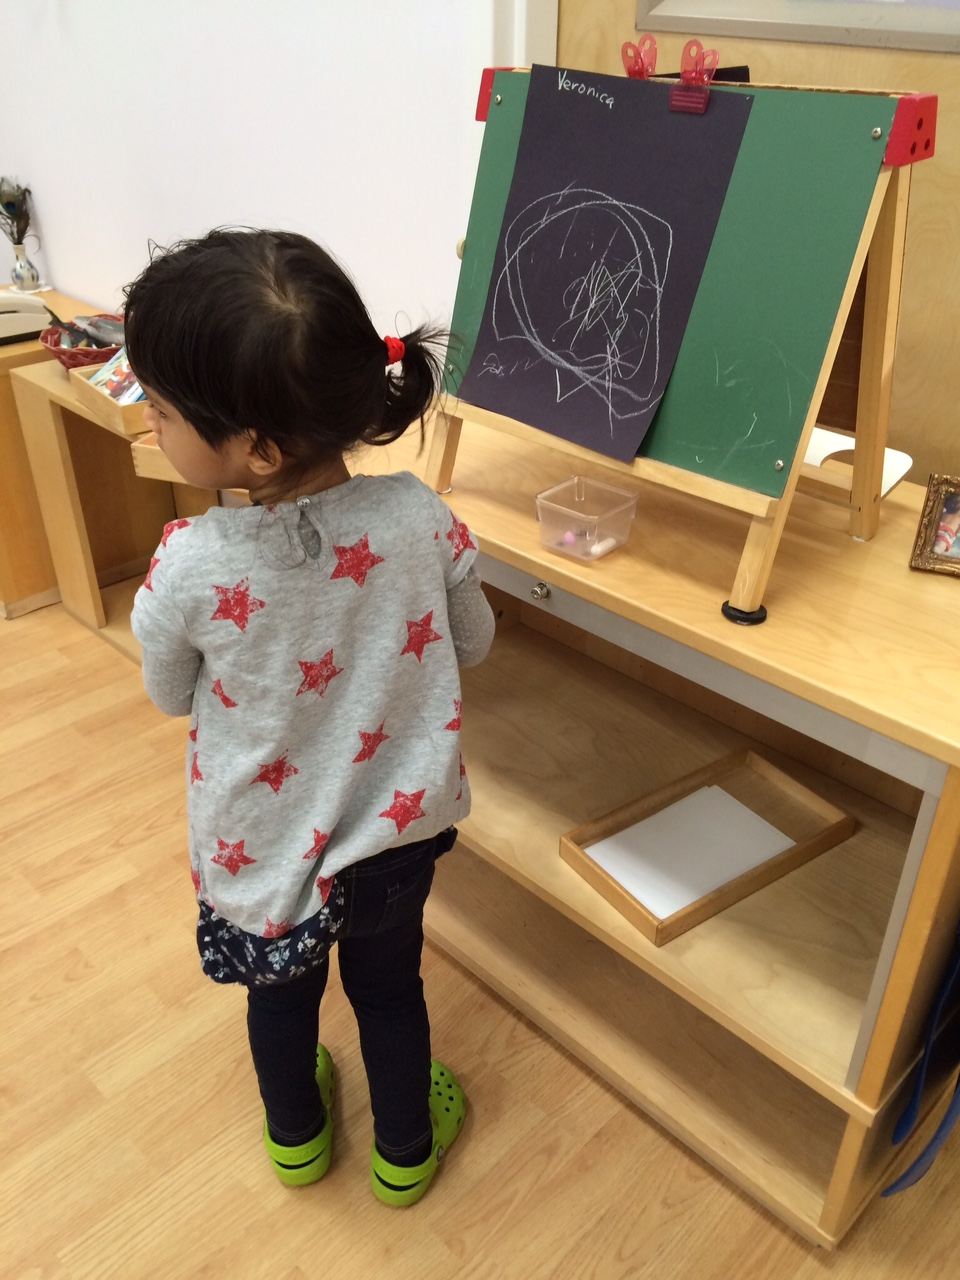 A Toddler 1 student drew circular lines, which is the beginning of cursive writing.